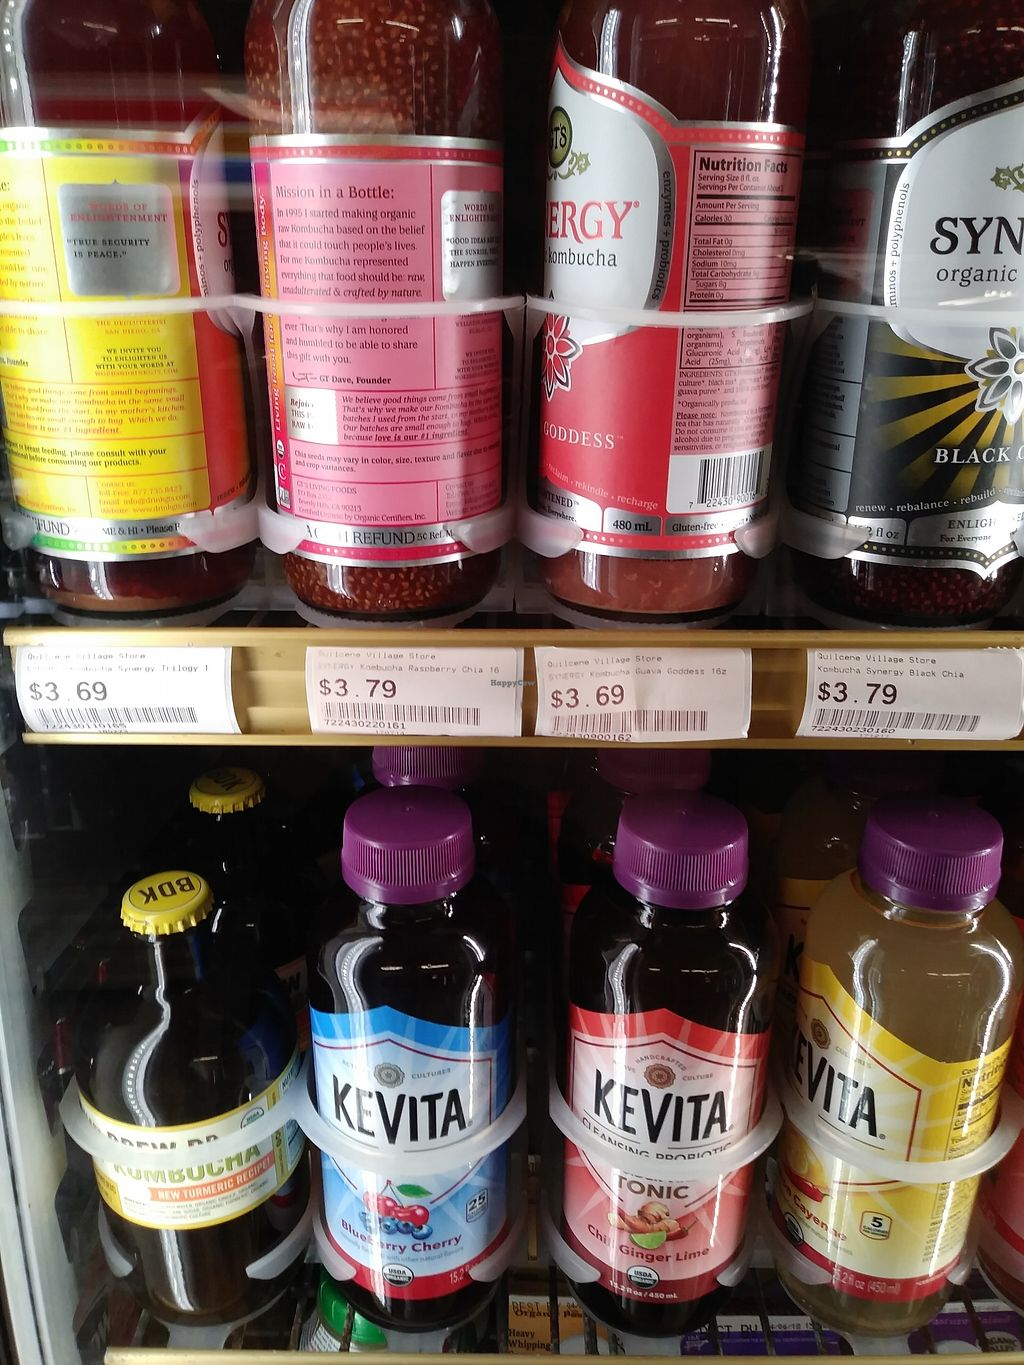 """Photo of Quilcene Village Store  by <a href=""""/members/profile/Cpronovost"""">Cpronovost</a> <br/>I a terrible photographer, but there are tons of Kombucha options <br/> March 7, 2018  - <a href='/contact/abuse/image/113632/367668'>Report</a>"""